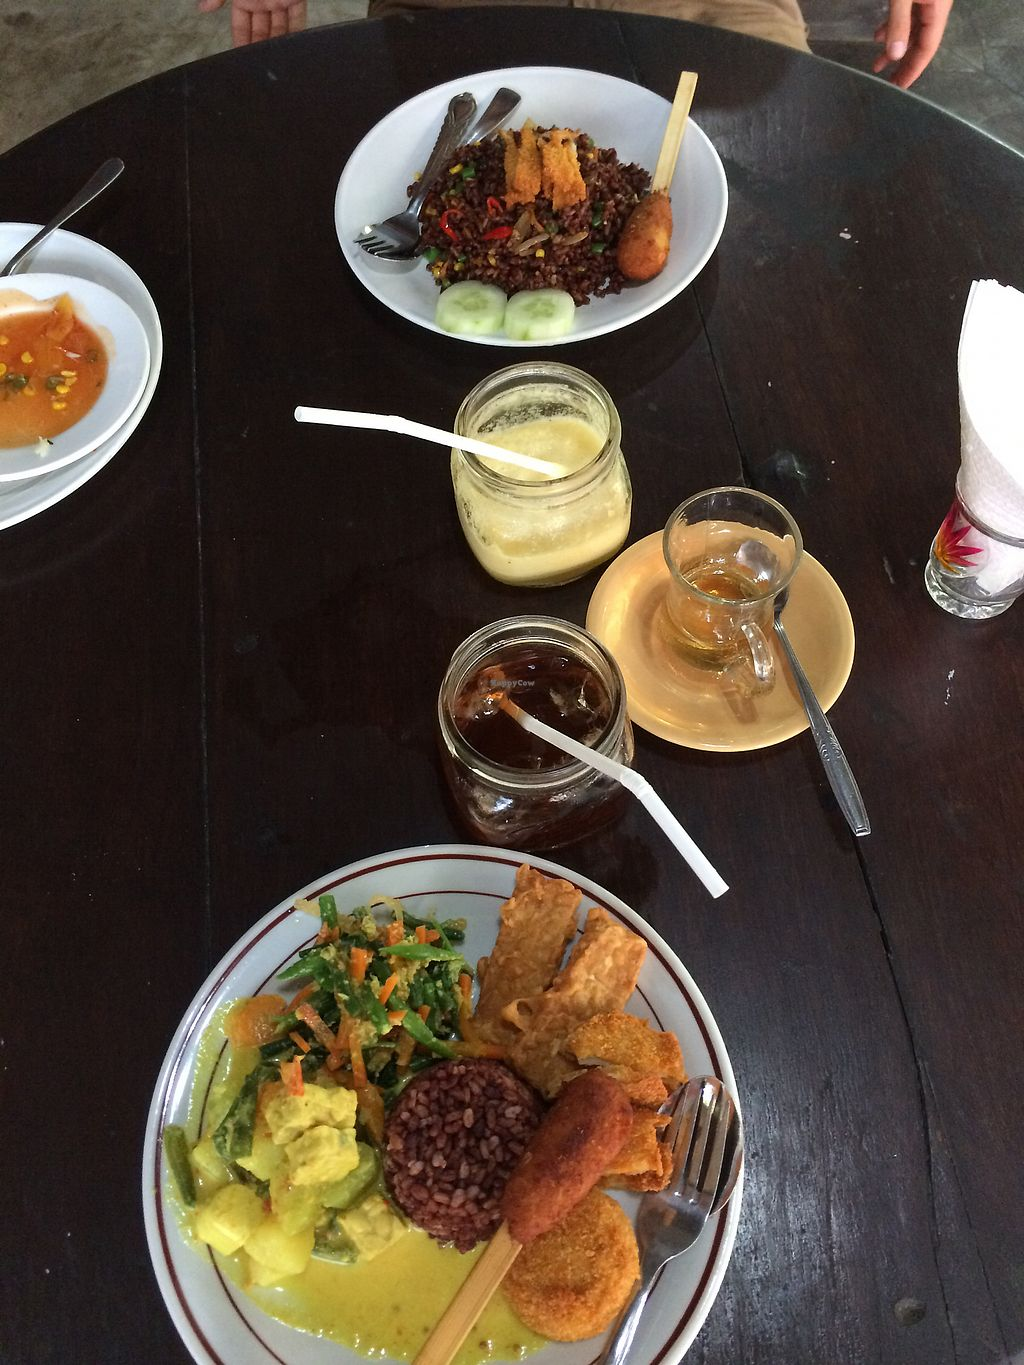 """Photo of Siboghana Waroeng  by <a href=""""/members/profile/HungryEaters"""">HungryEaters</a> <br/>Nasi campur (front), Nasi goreng (back). pineapple juice and ice tea! everything very delicious! <br/> December 3, 2017  - <a href='/contact/abuse/image/34780/331854'>Report</a>"""